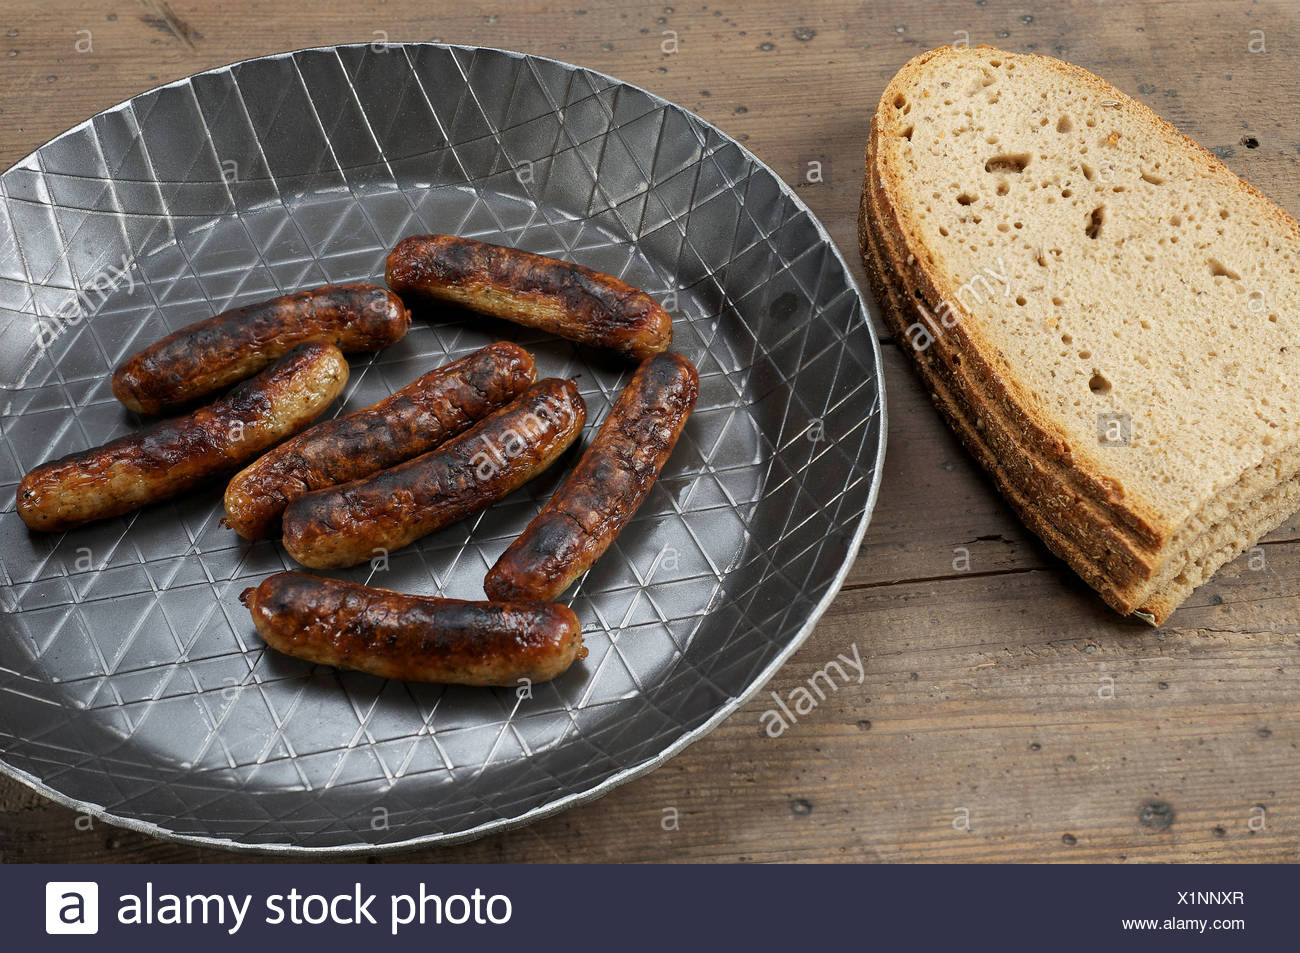 Nuernberger bratwurst in an iron pan with bread - Stock Image